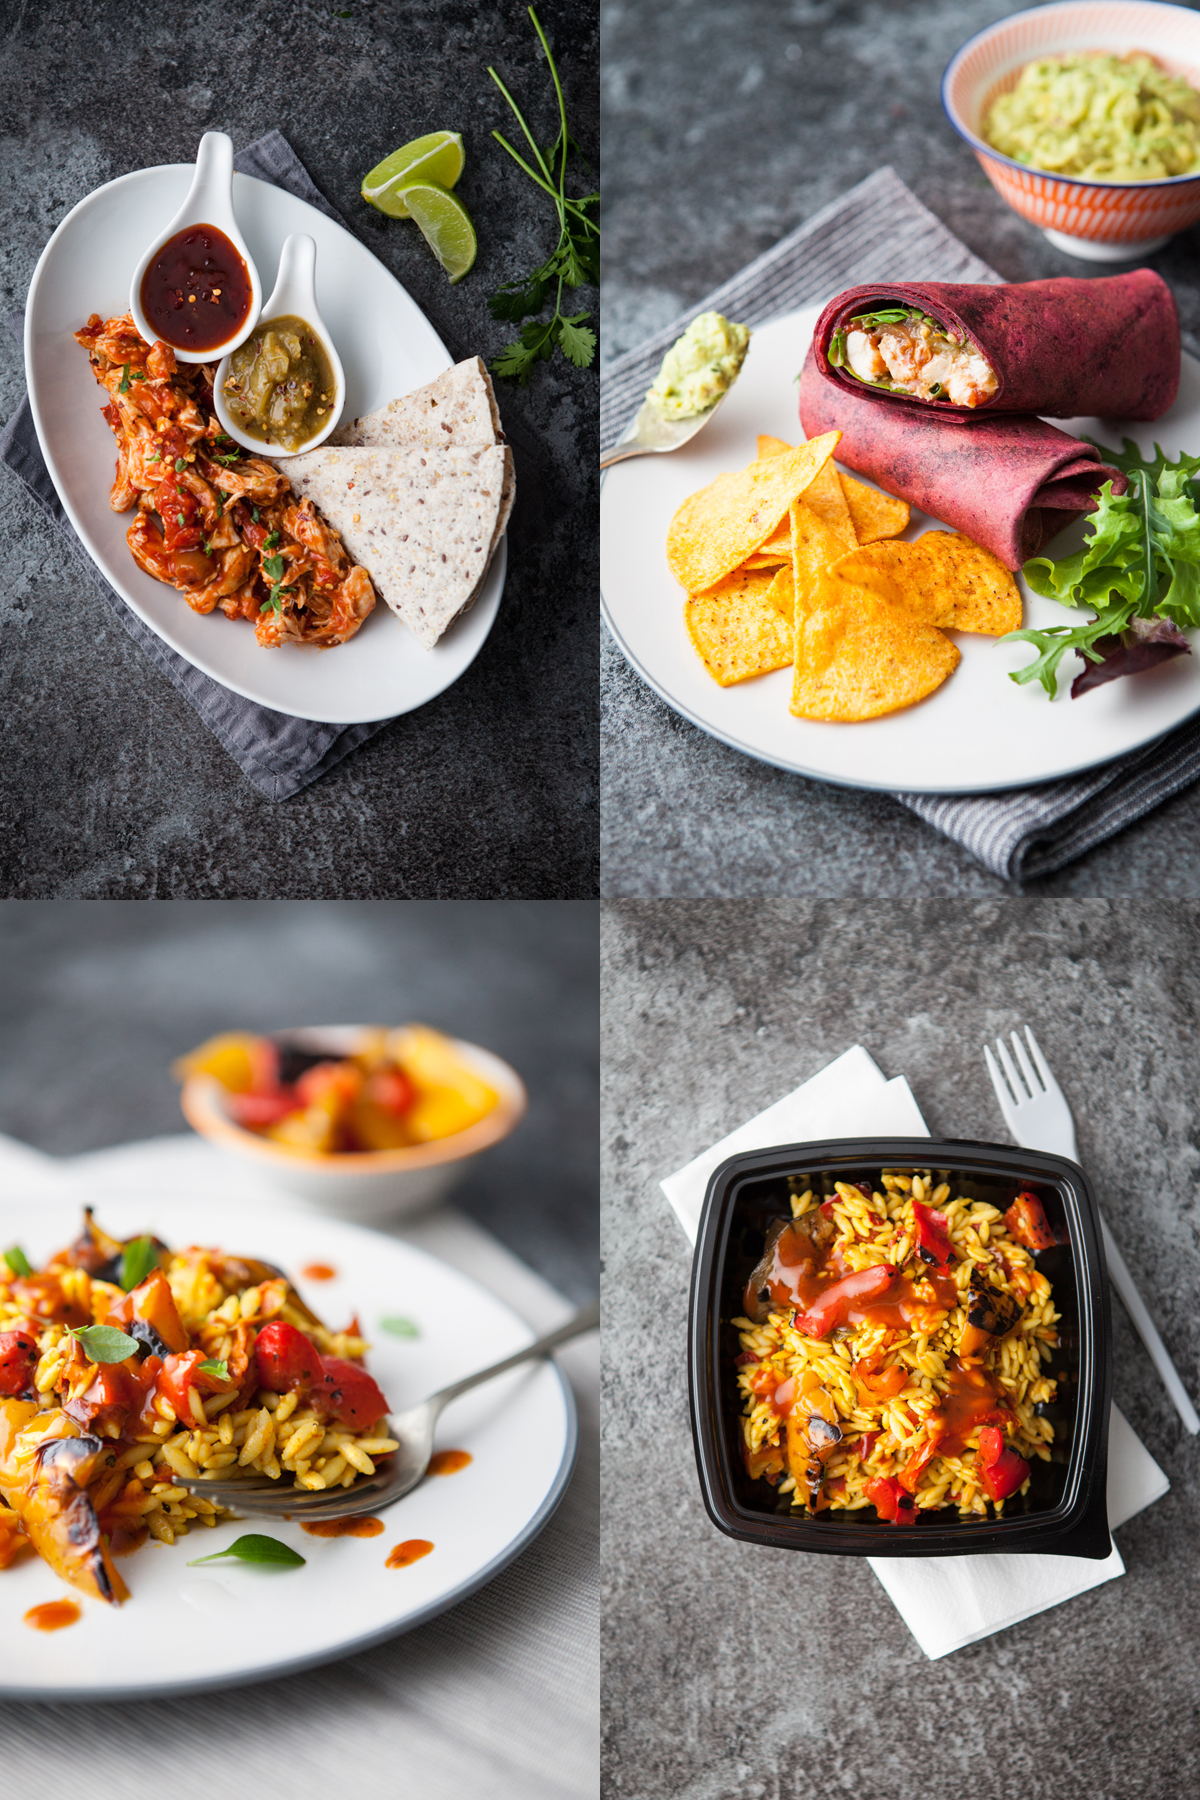 Selection of images taken for Calder Foods